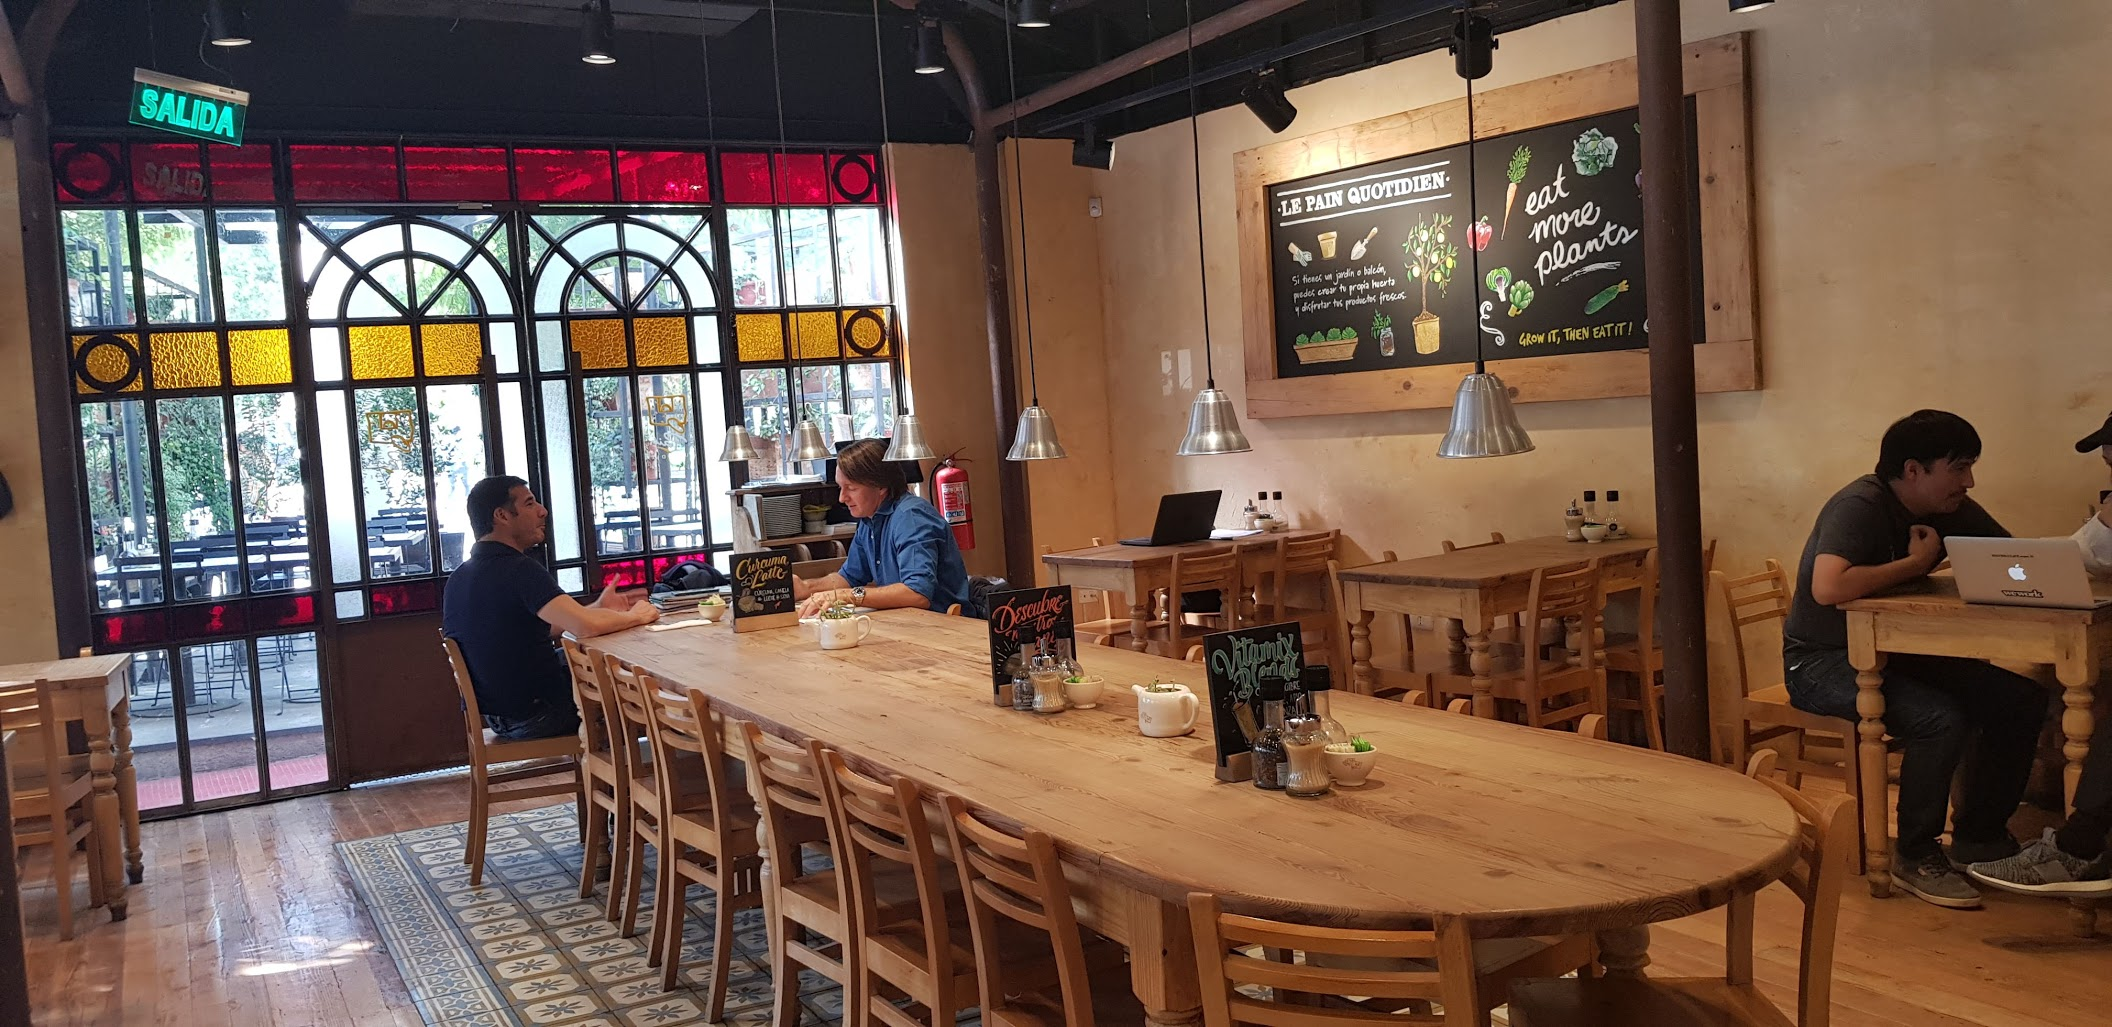 Great cafe for groups in Santiago